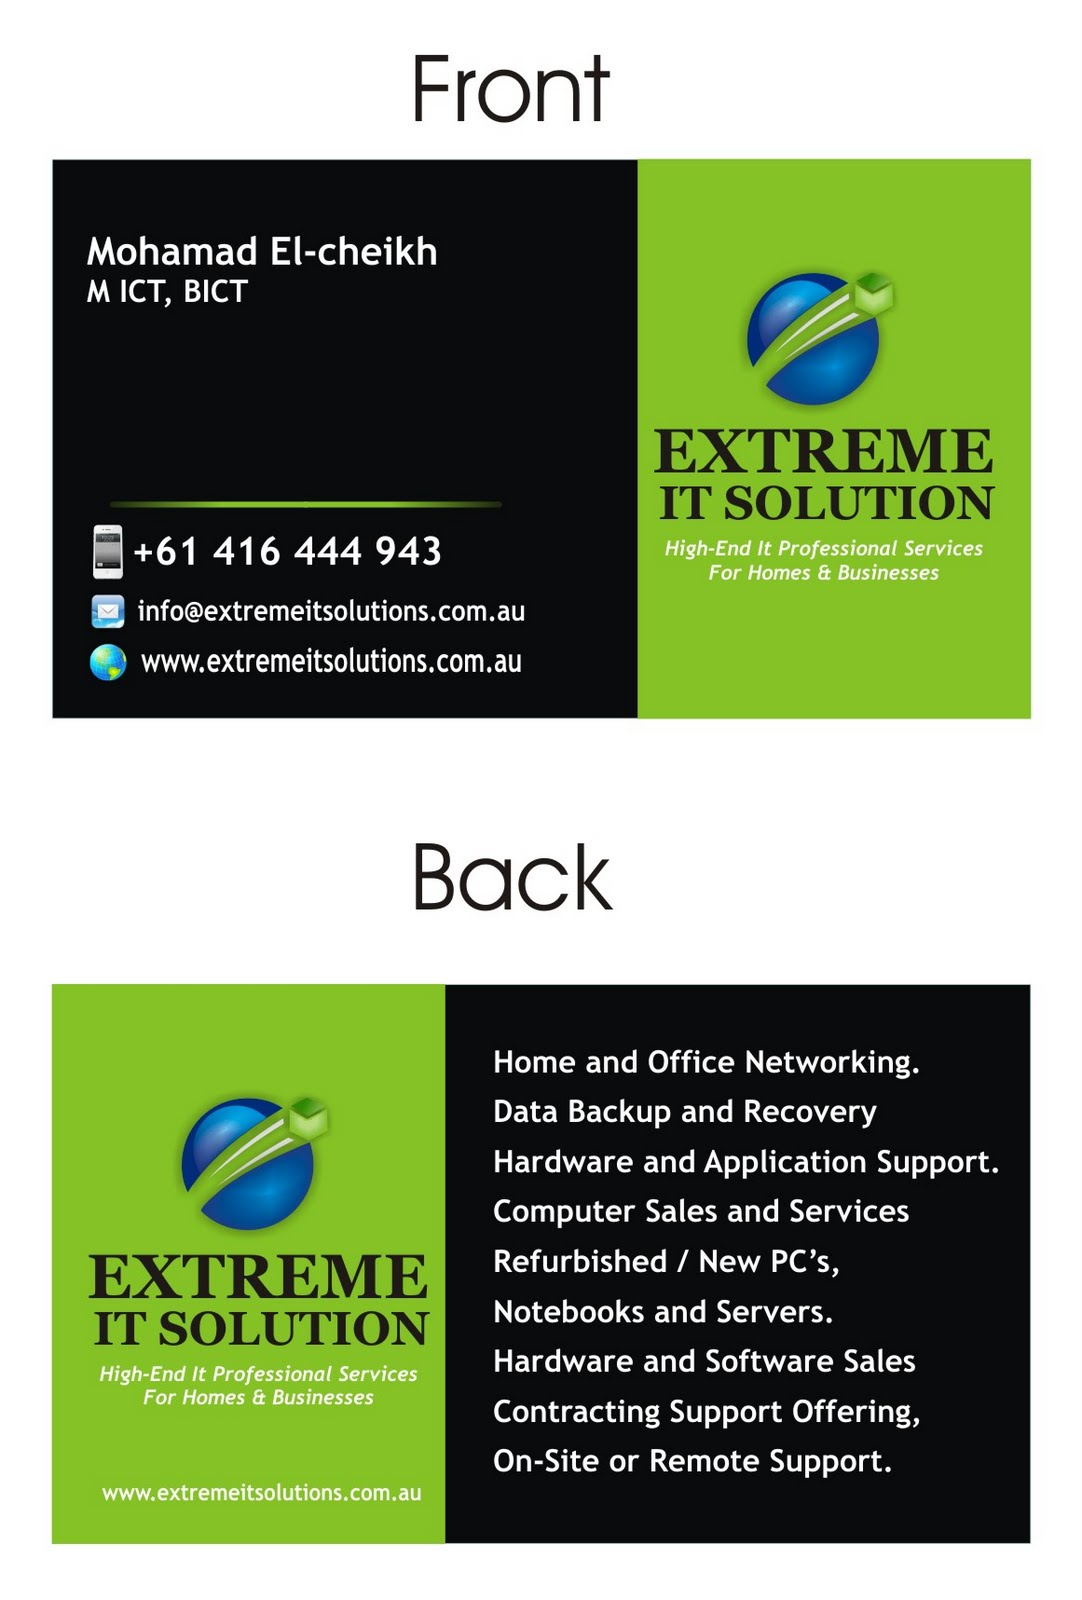 Extreme IT Solutions Business Cards Design